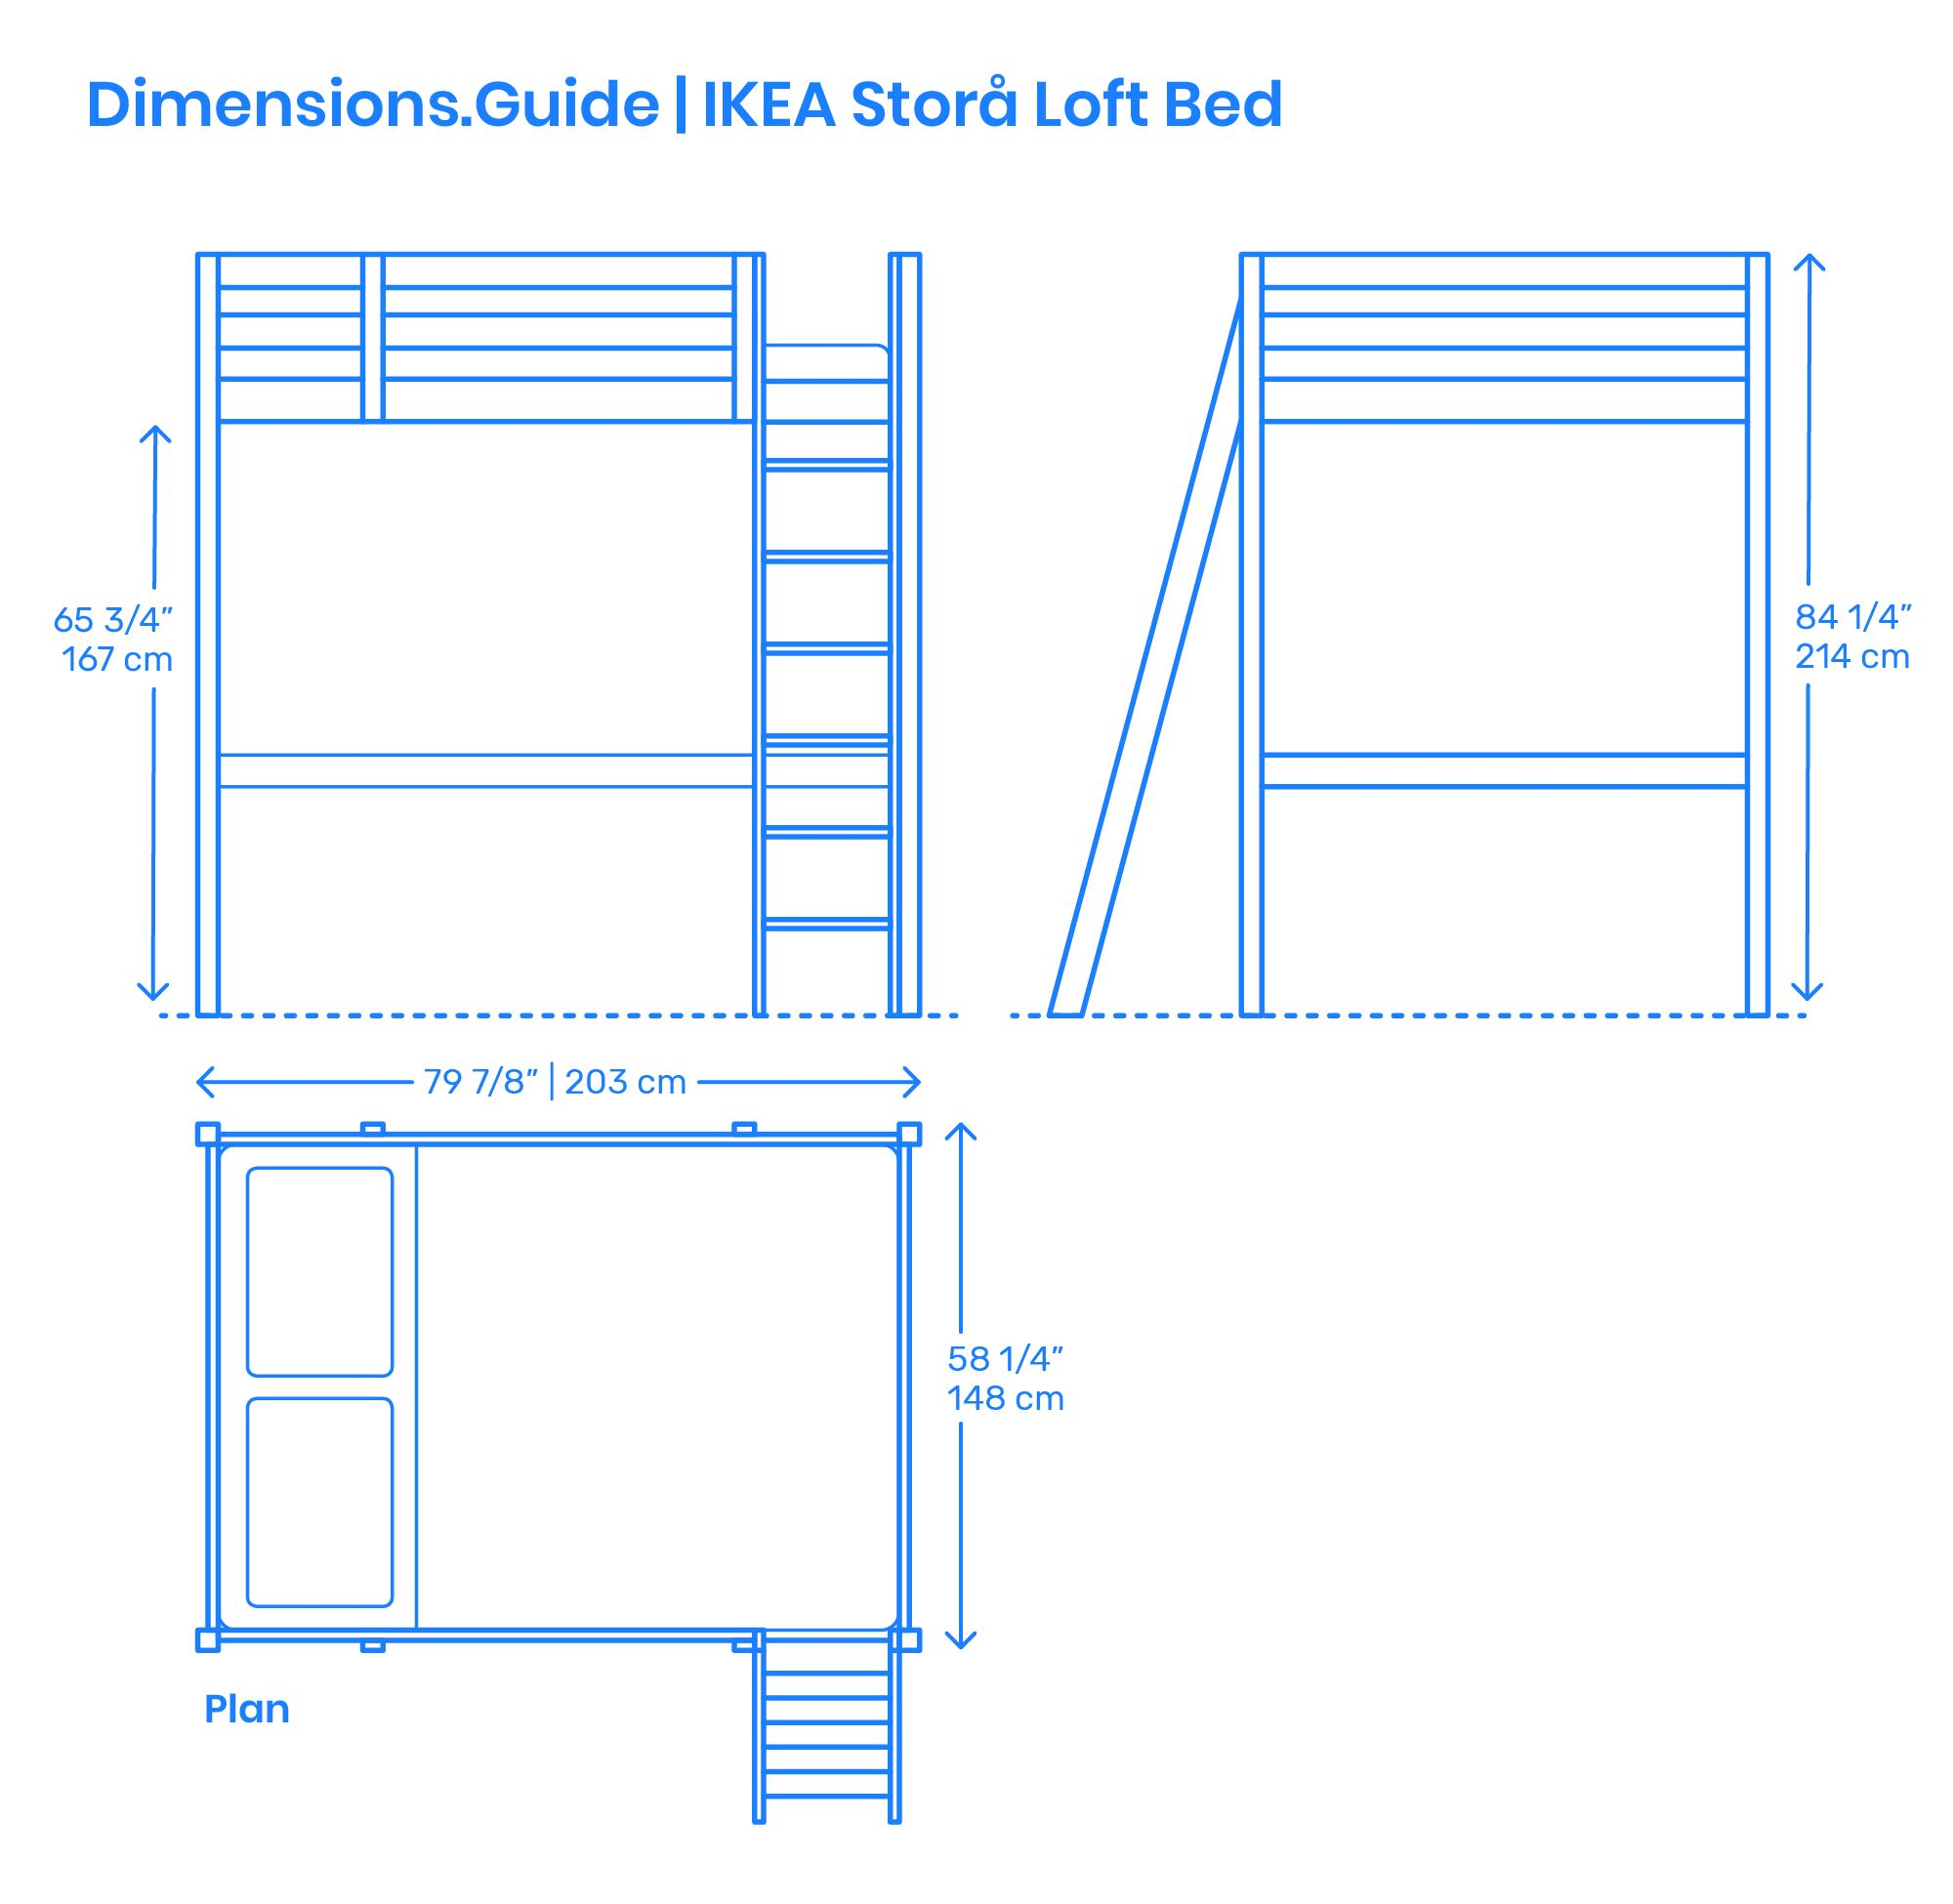 The IKEA Storå Loft Bed is a solid wood loft frame capable